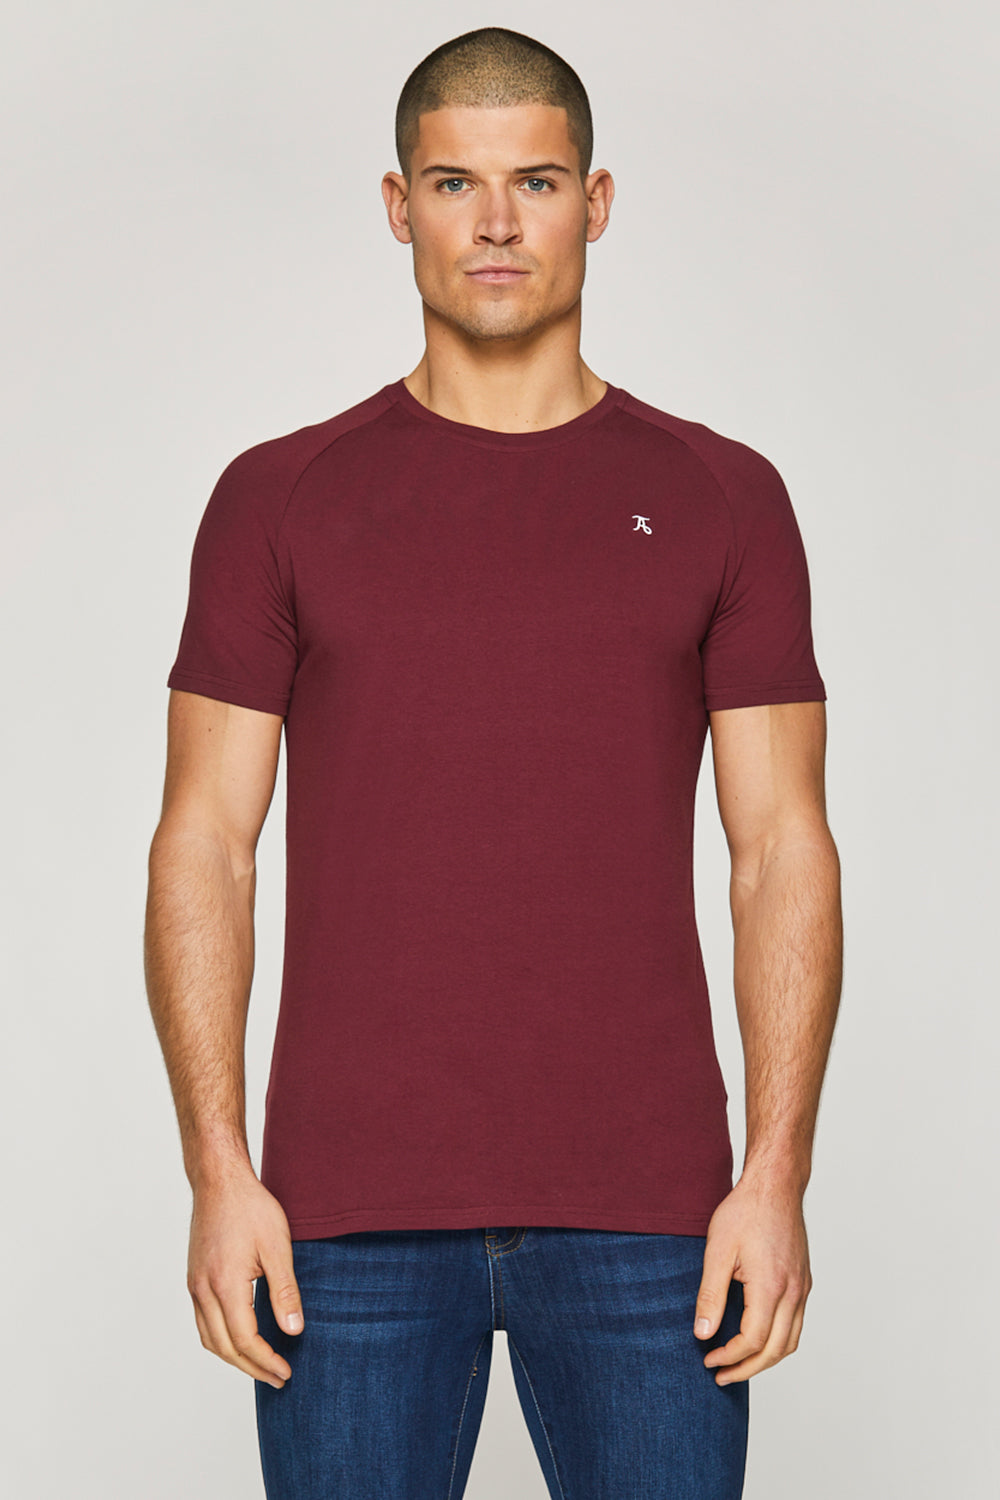 Essential T-Shirt in Burgundy